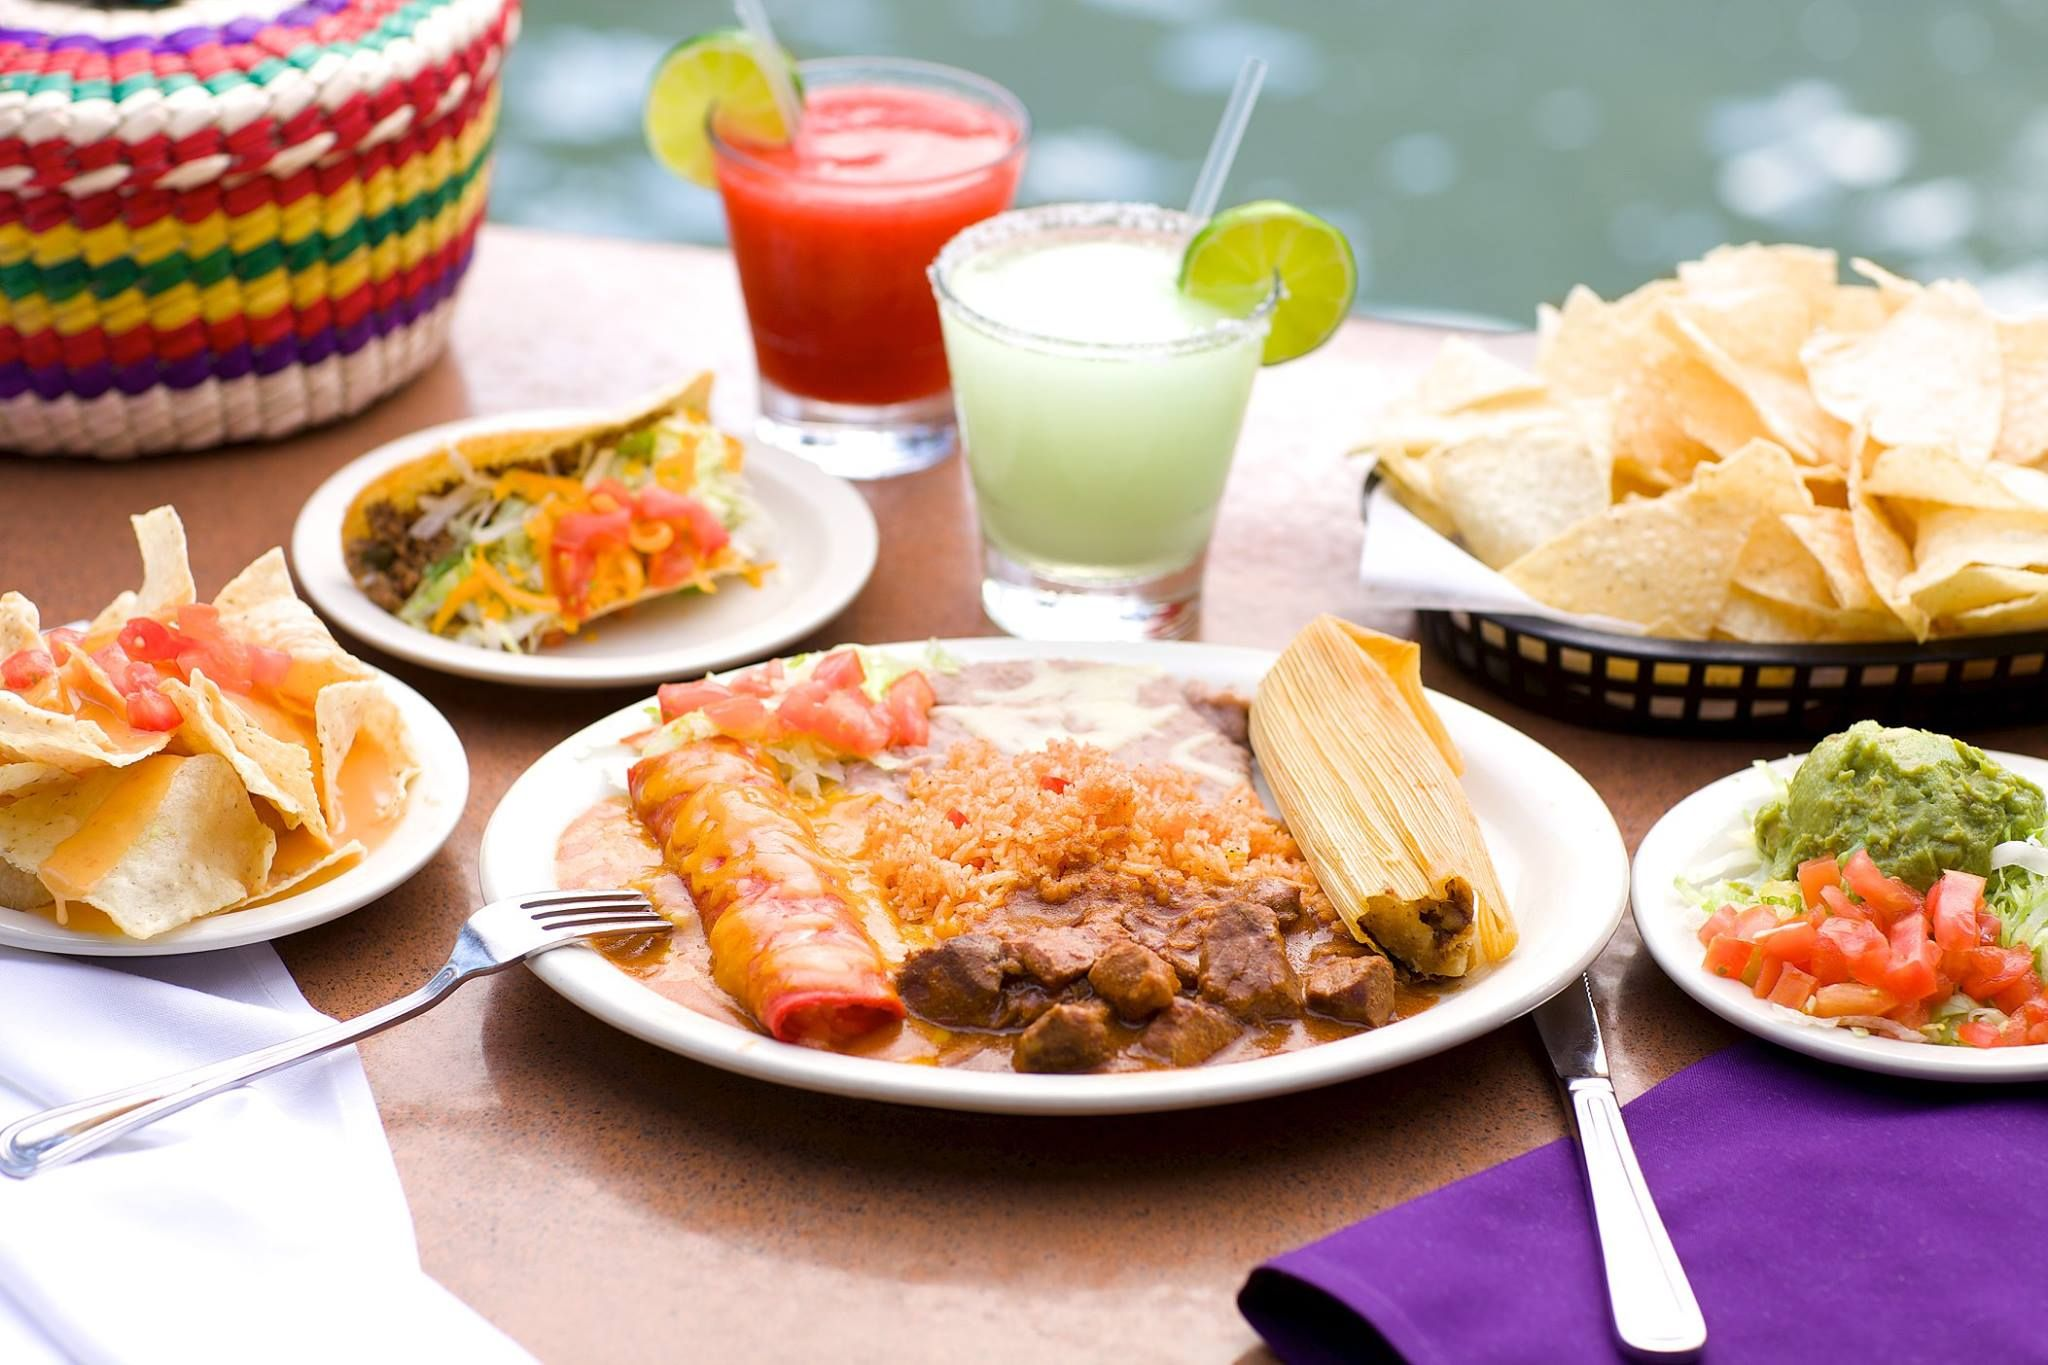 Casa rio mexican see a nice view and taste one of the